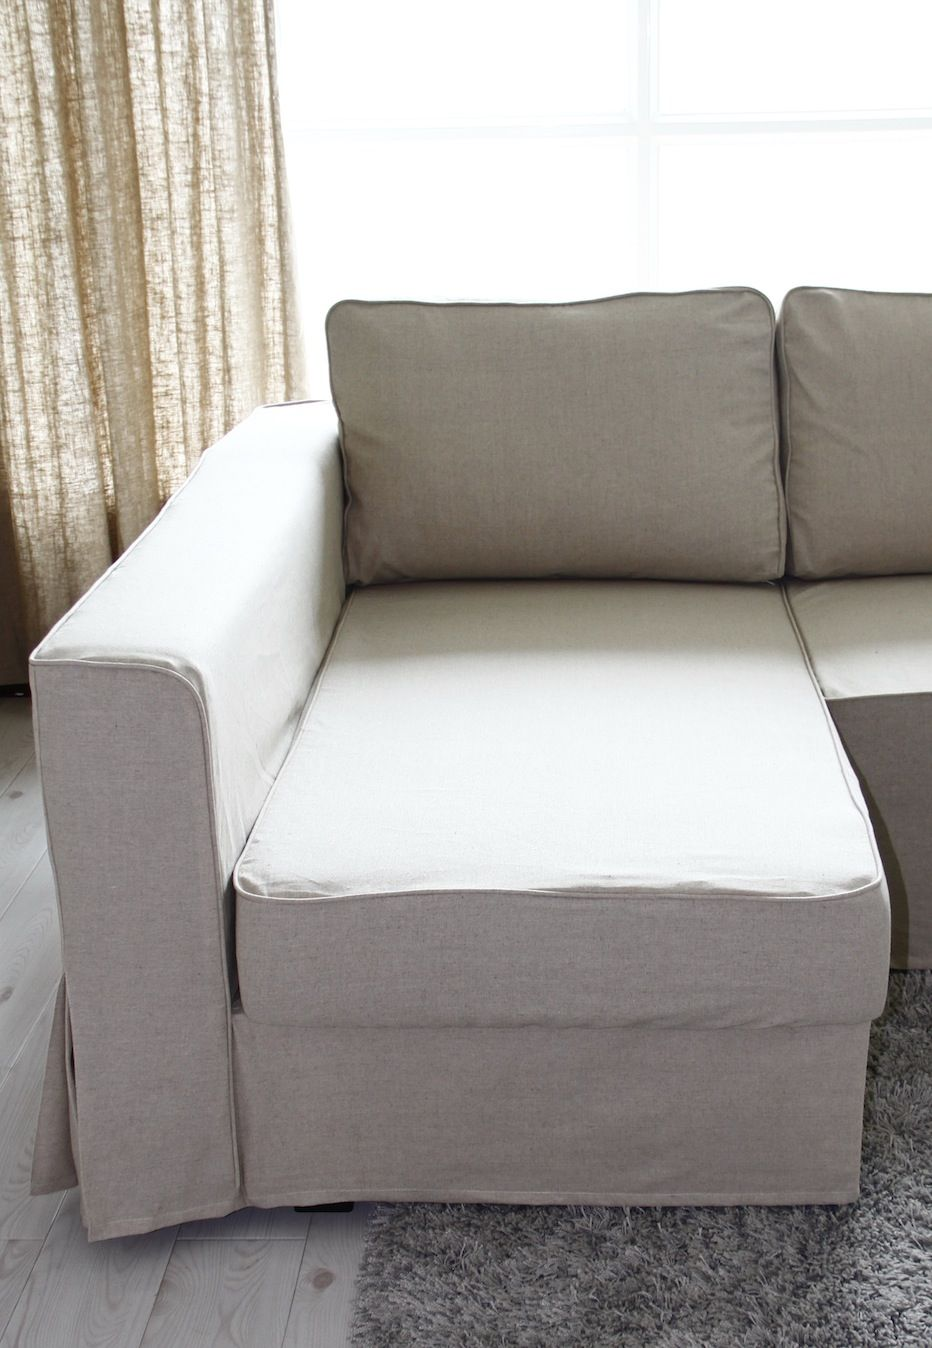 Loose Fit Linen Manstad Sofa Slipcovers Now Available